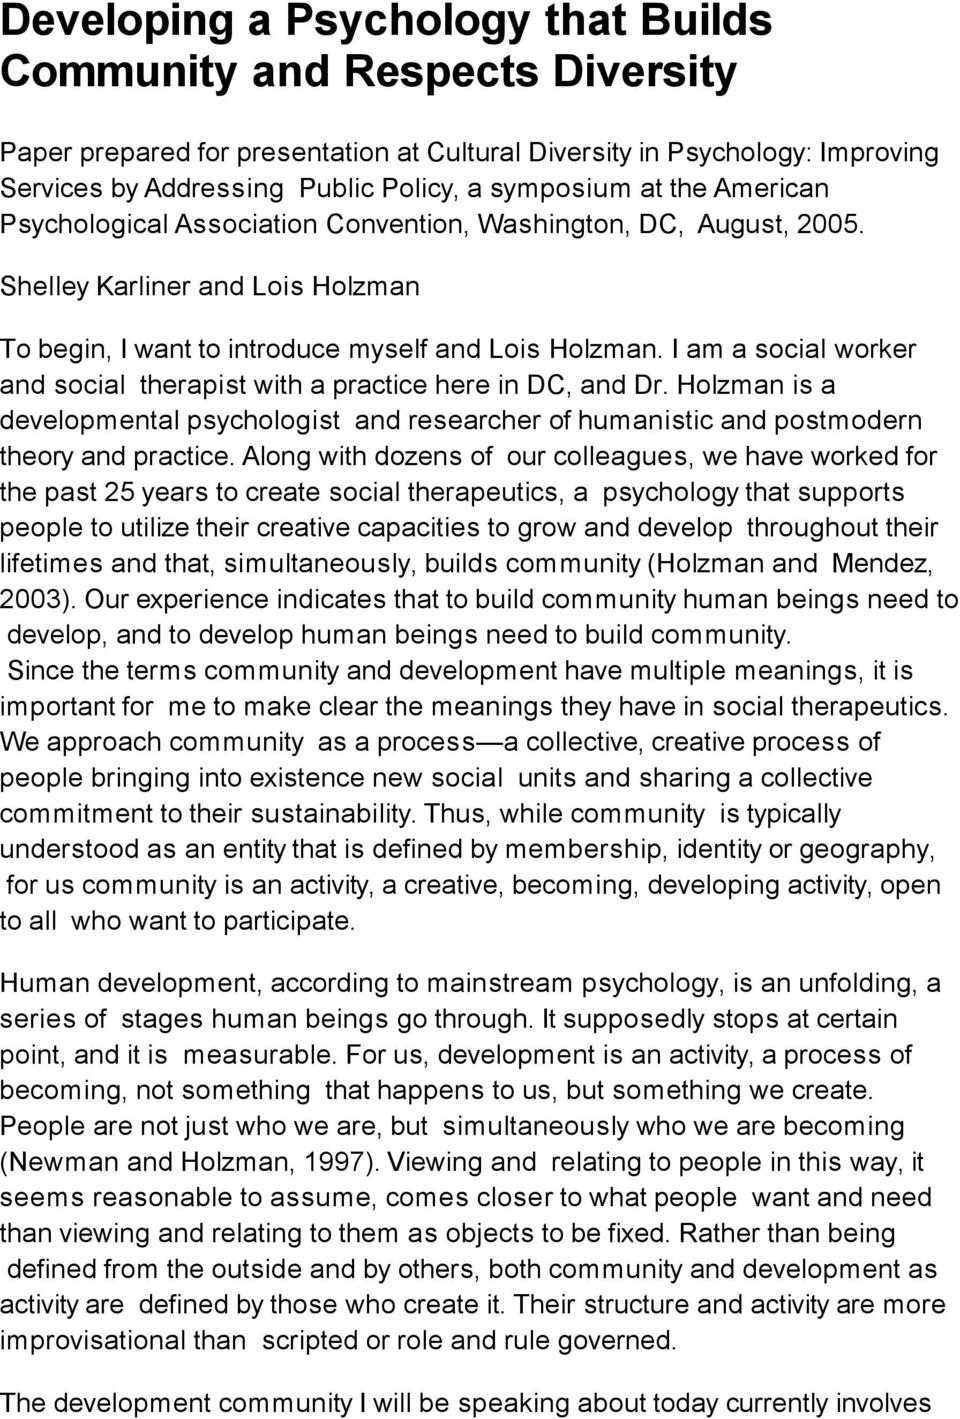 I am a social worker and social therapist with a practice here in DC, and Dr. Holzman is a developmental psychologist and researcher of humanistic and postmodern theory and practice.